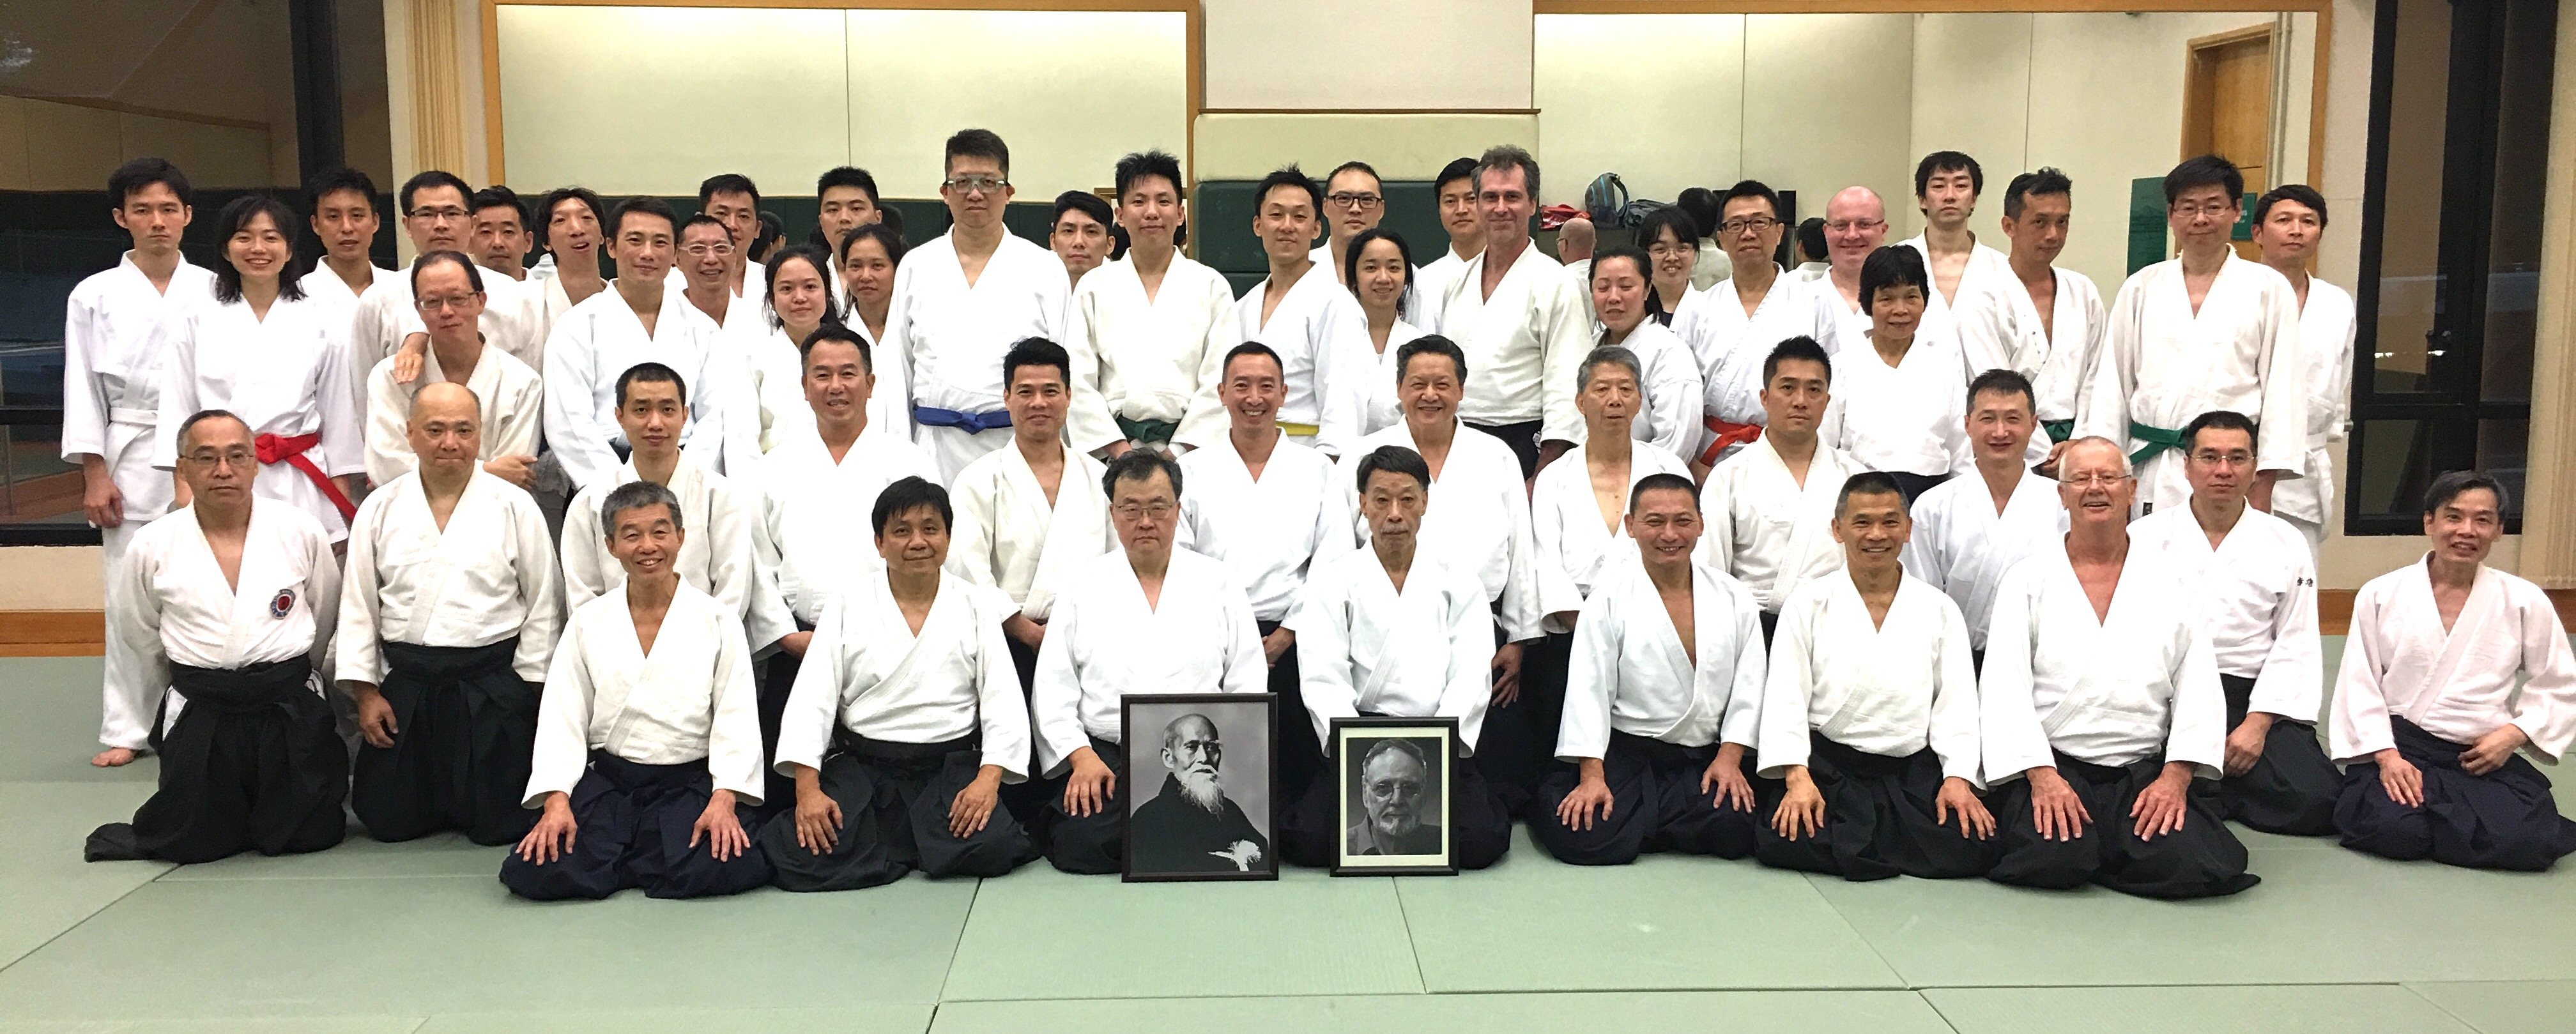 Cottier Shihan Memorial Practice and Embu, Ho Man Tin Dojo, 10 June 2017